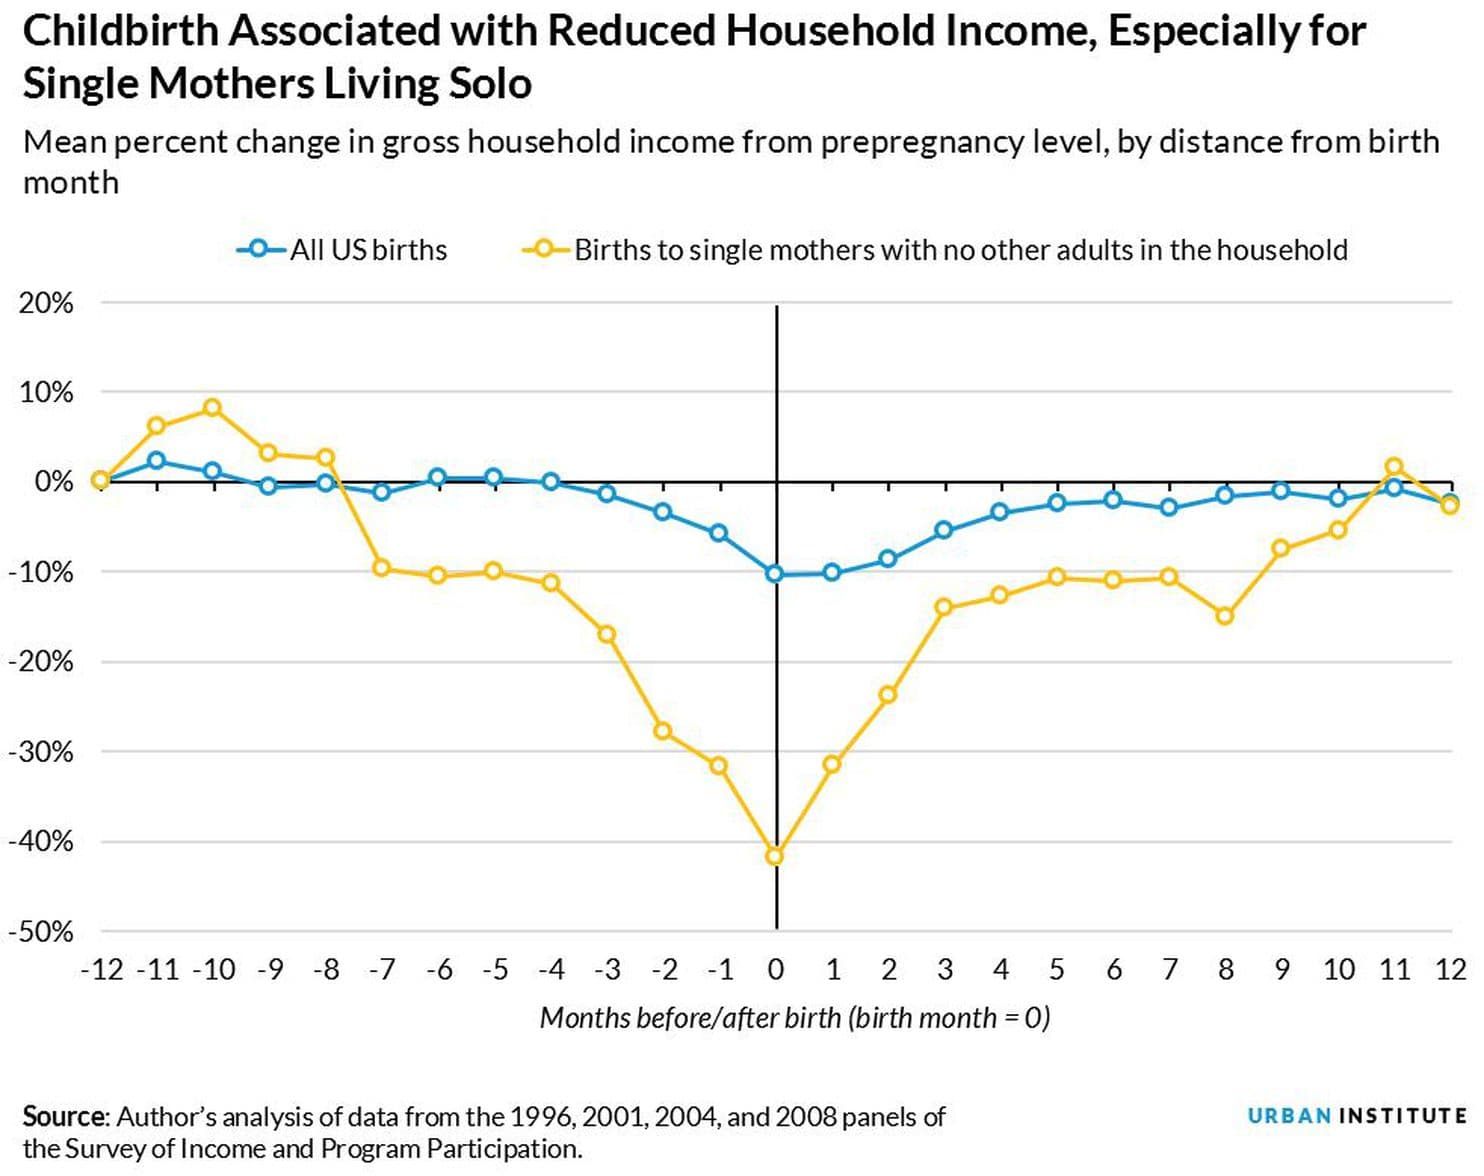 Note the income for women as they near birth and after and note the huge difference between single mothers and all births.